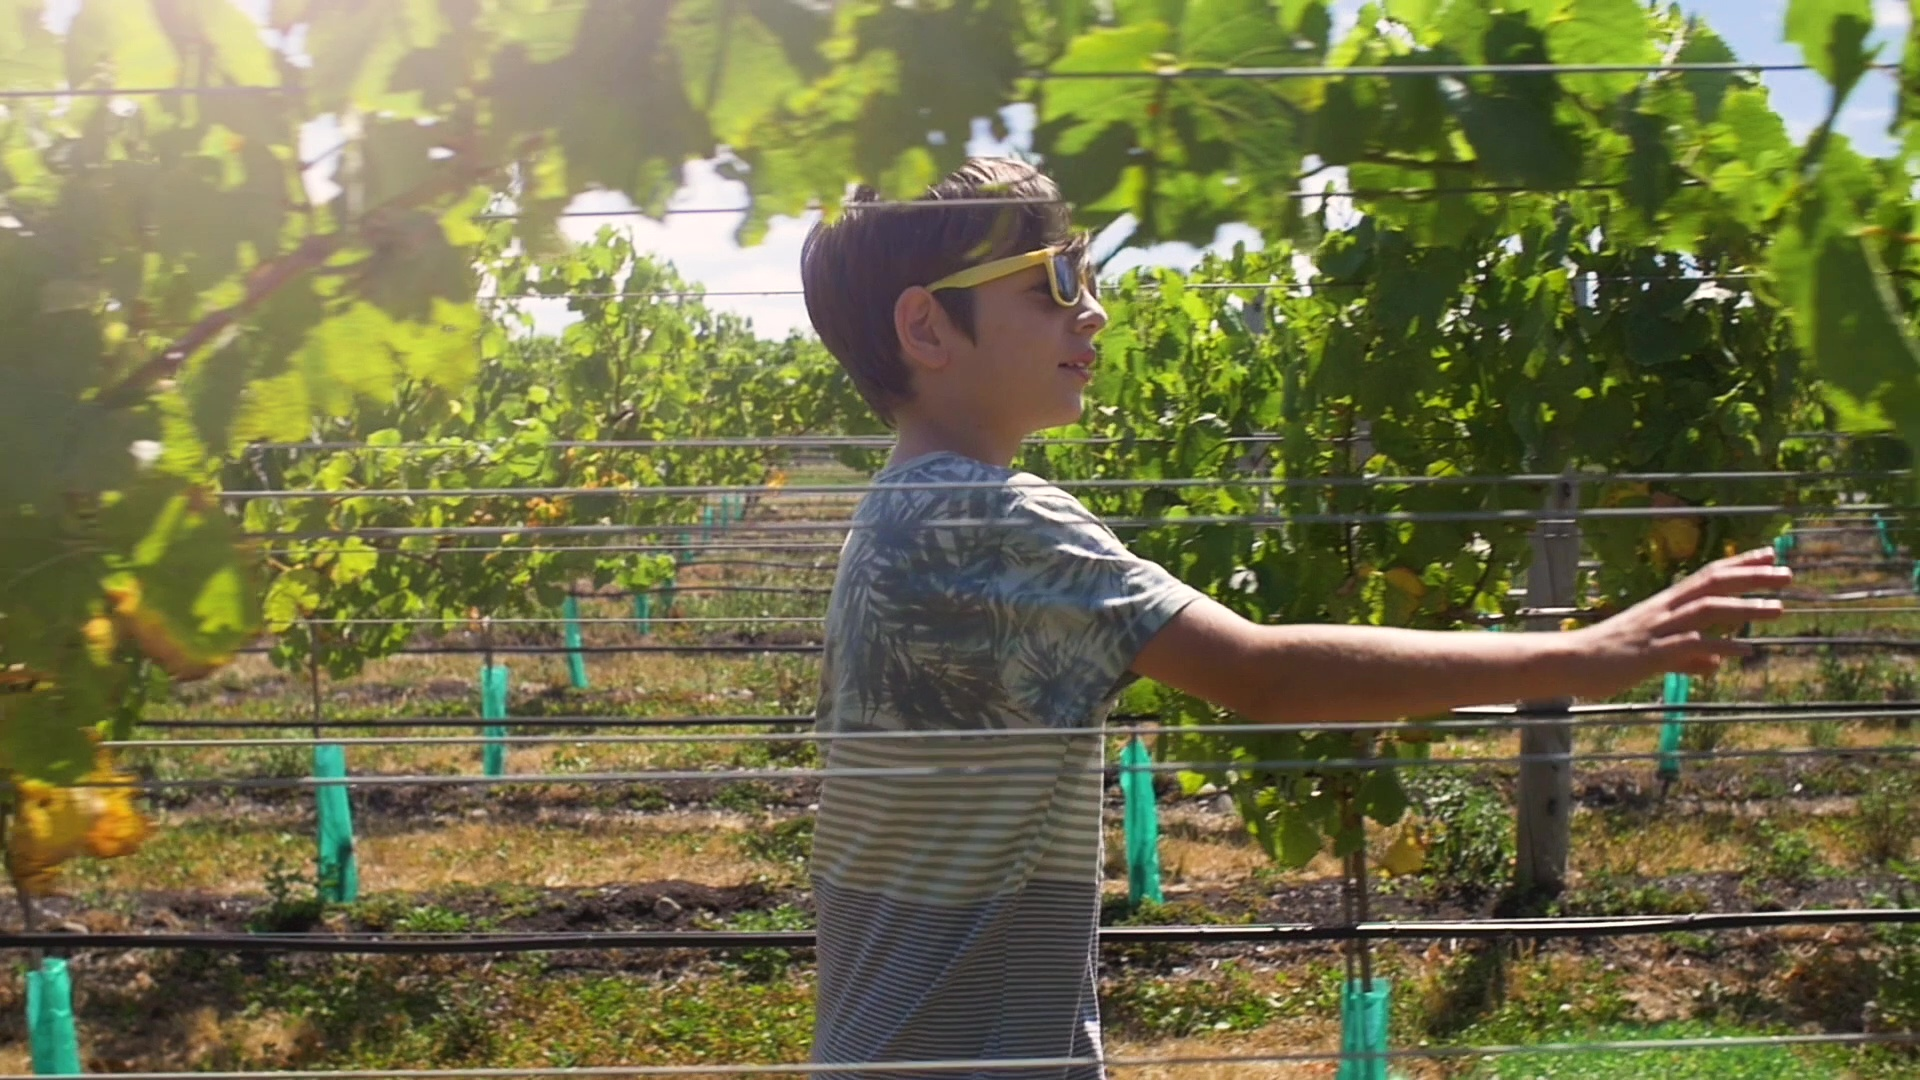 Schoolhouse Rocked Teaser Trailer - Boy in a vineyard